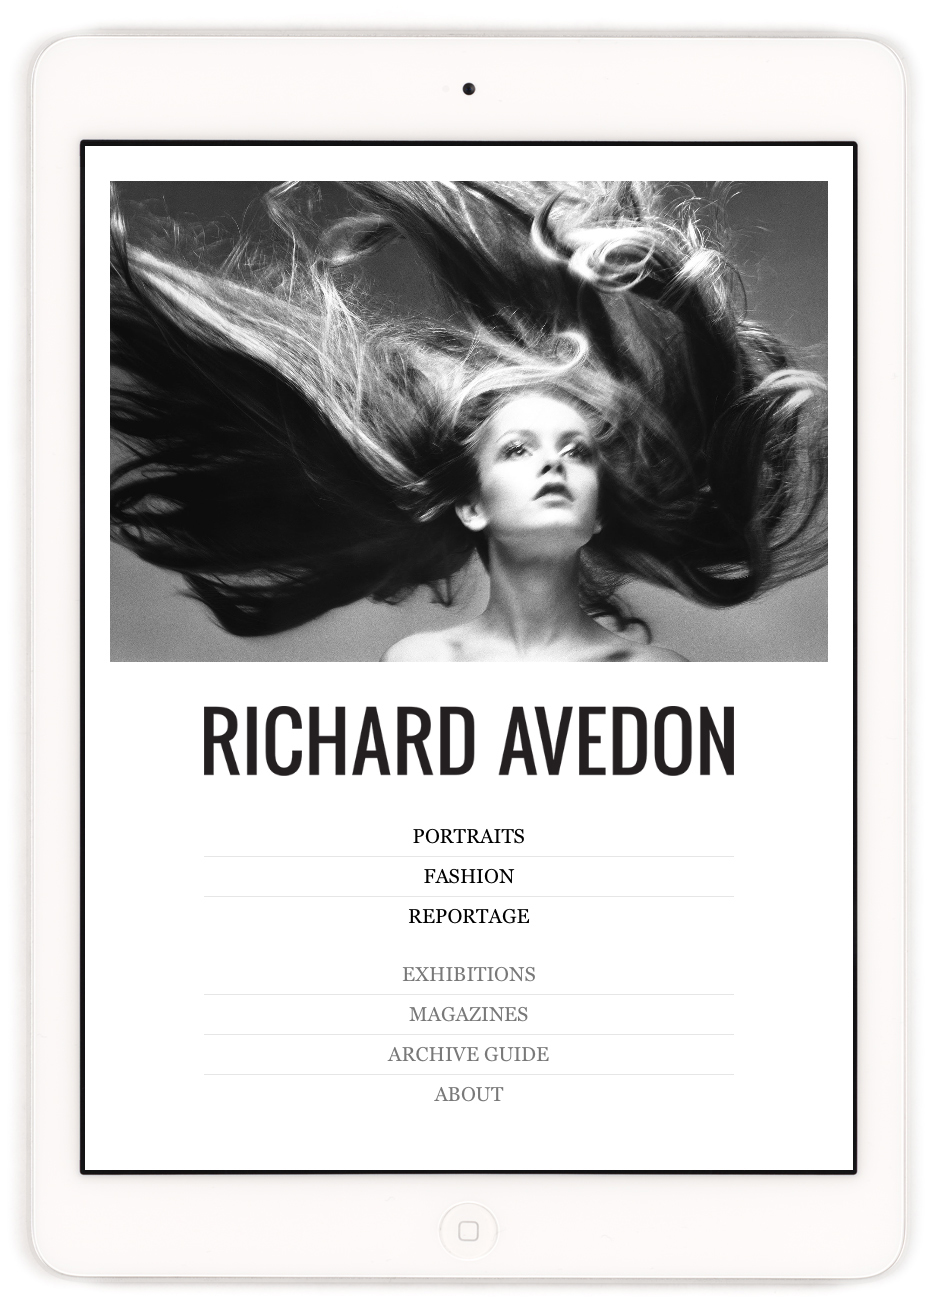 Richard Avedon foundation iPad app